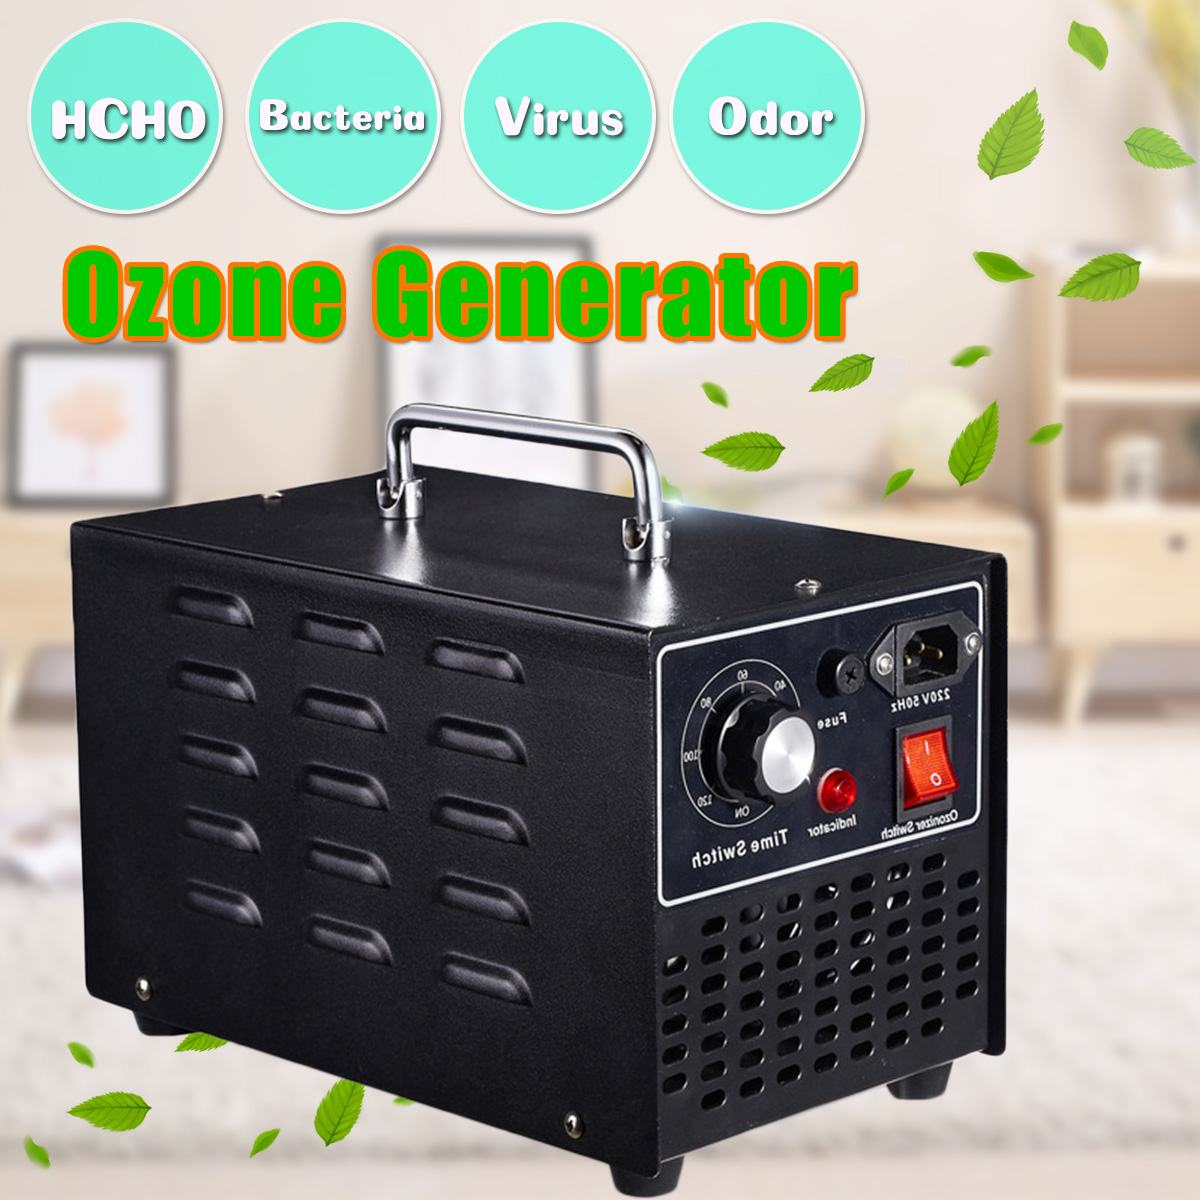 10g/h 220V/110V Ozone Generator Air Purifier for Indoor Household Ozonator Sterilization Odor Formaldehyde Air Cleaner Timer